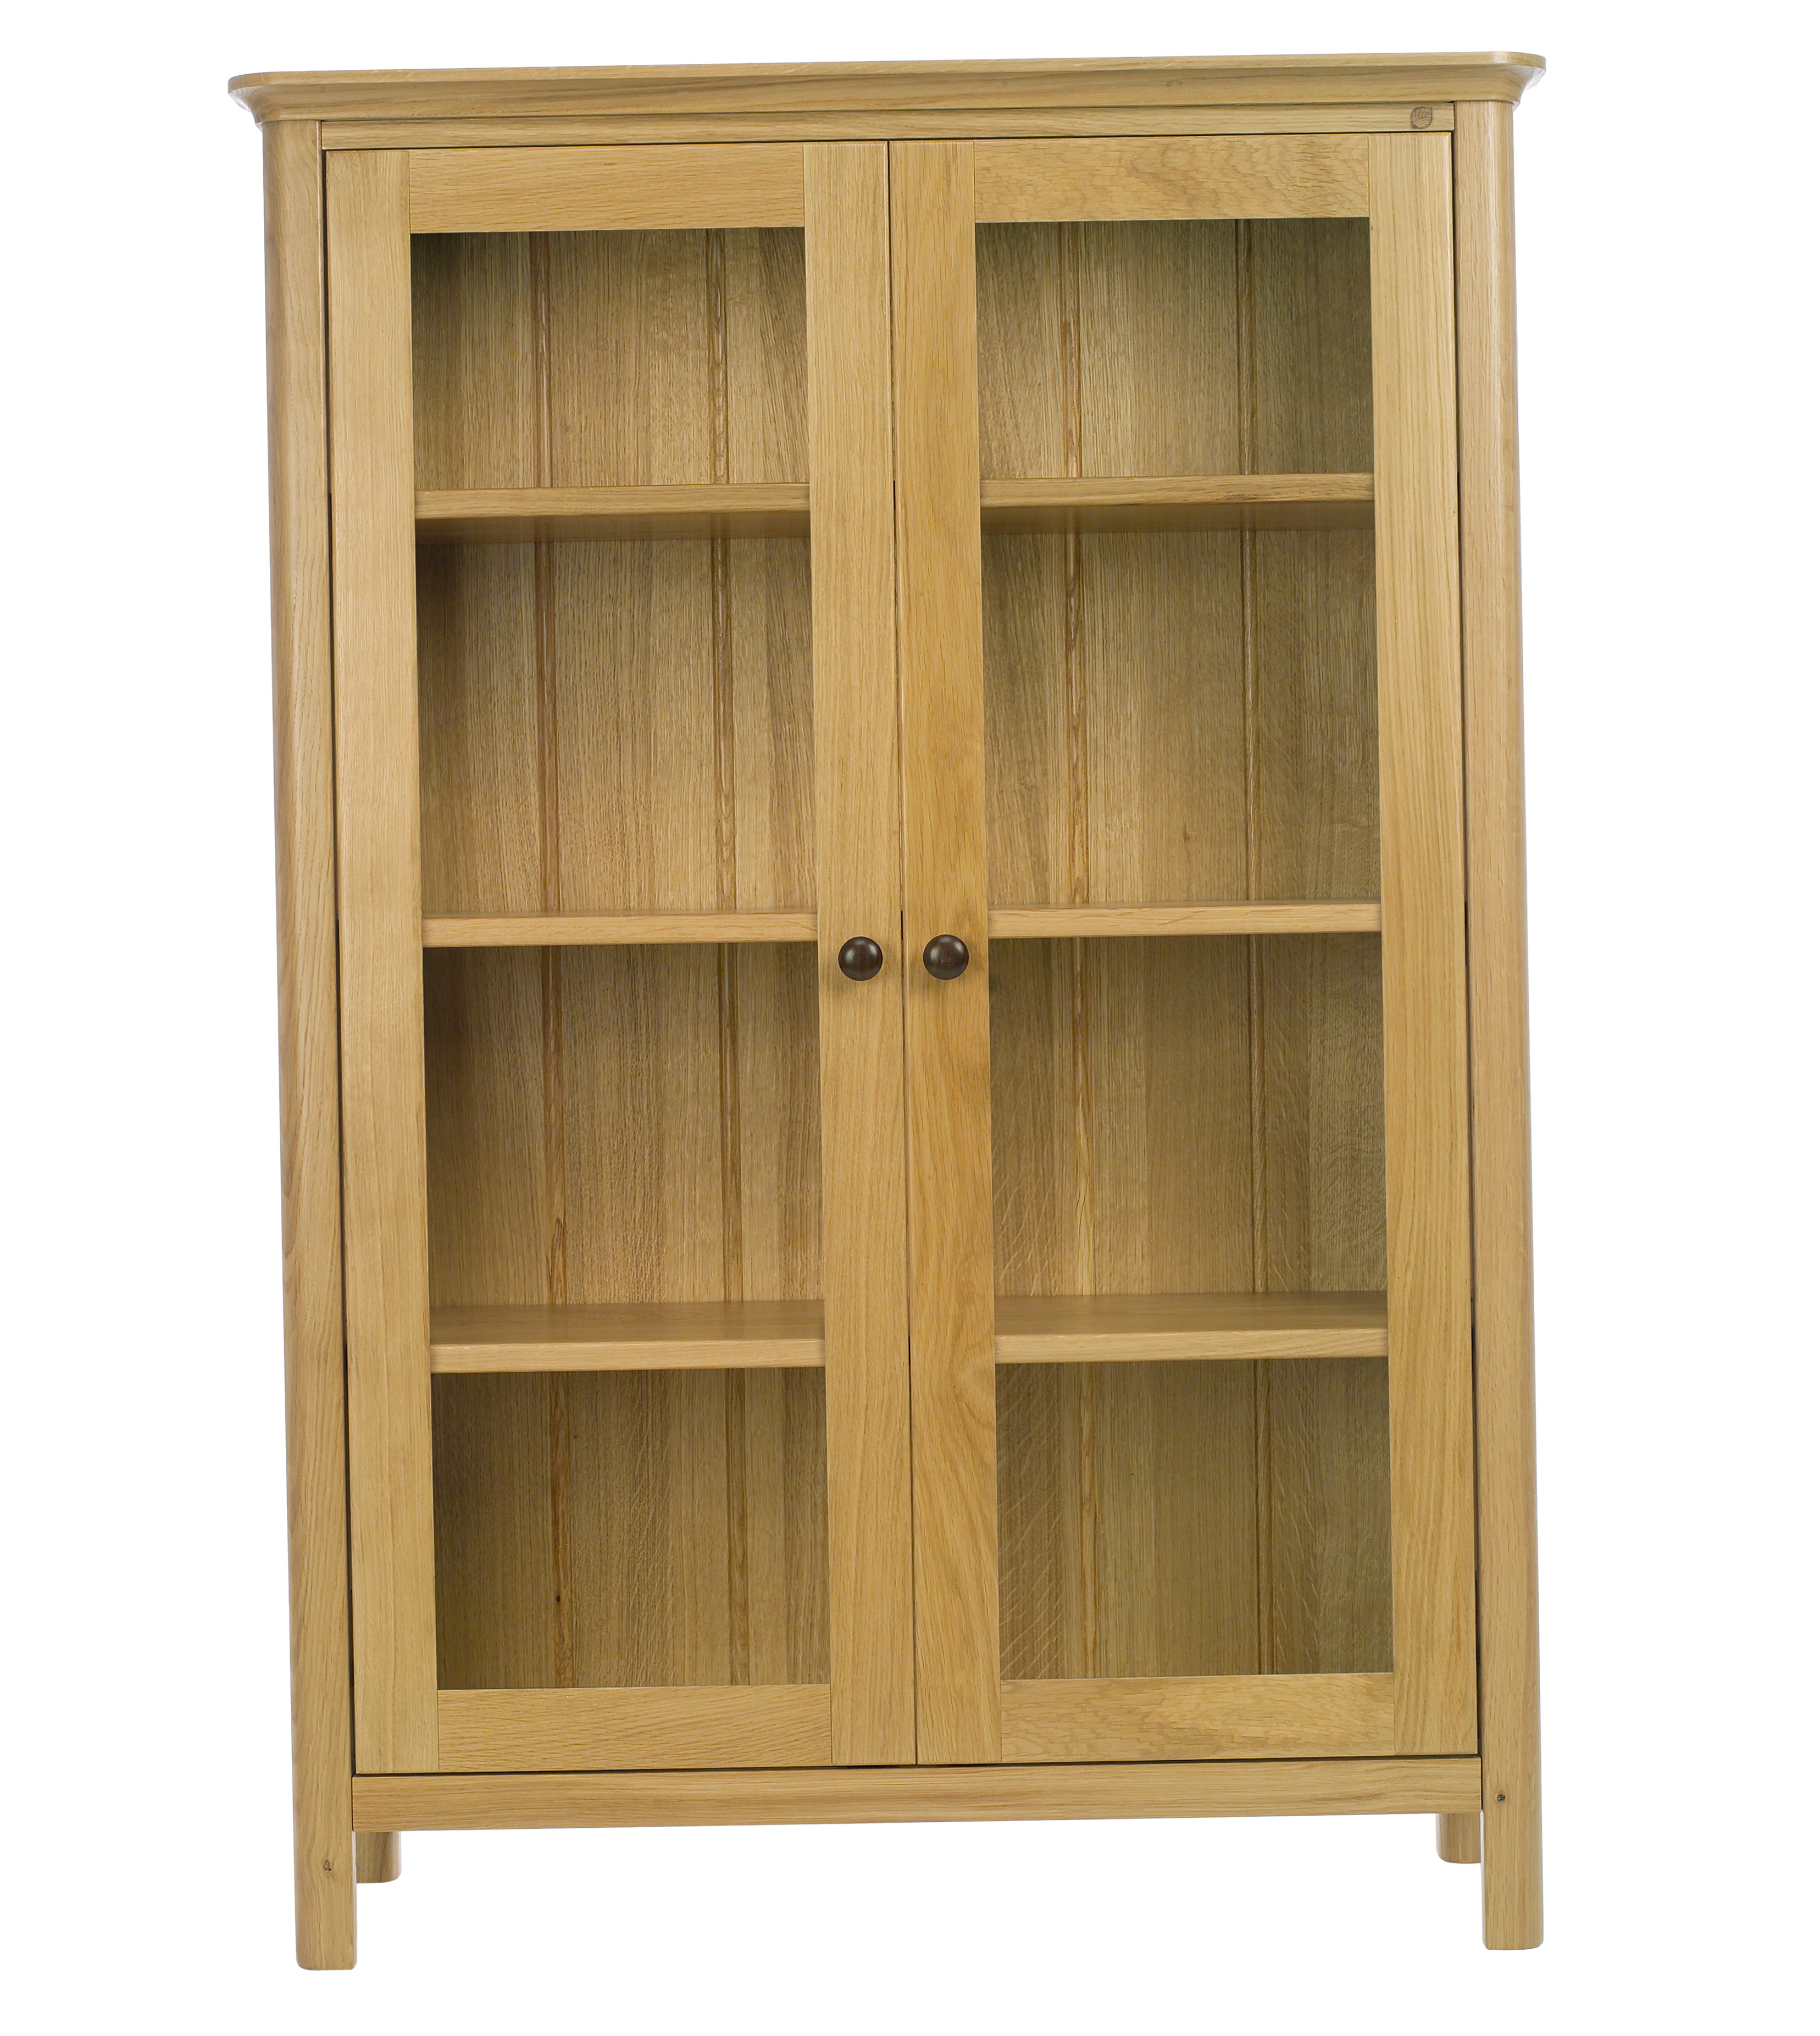 4 Shelf Bookcase With Glass Doors